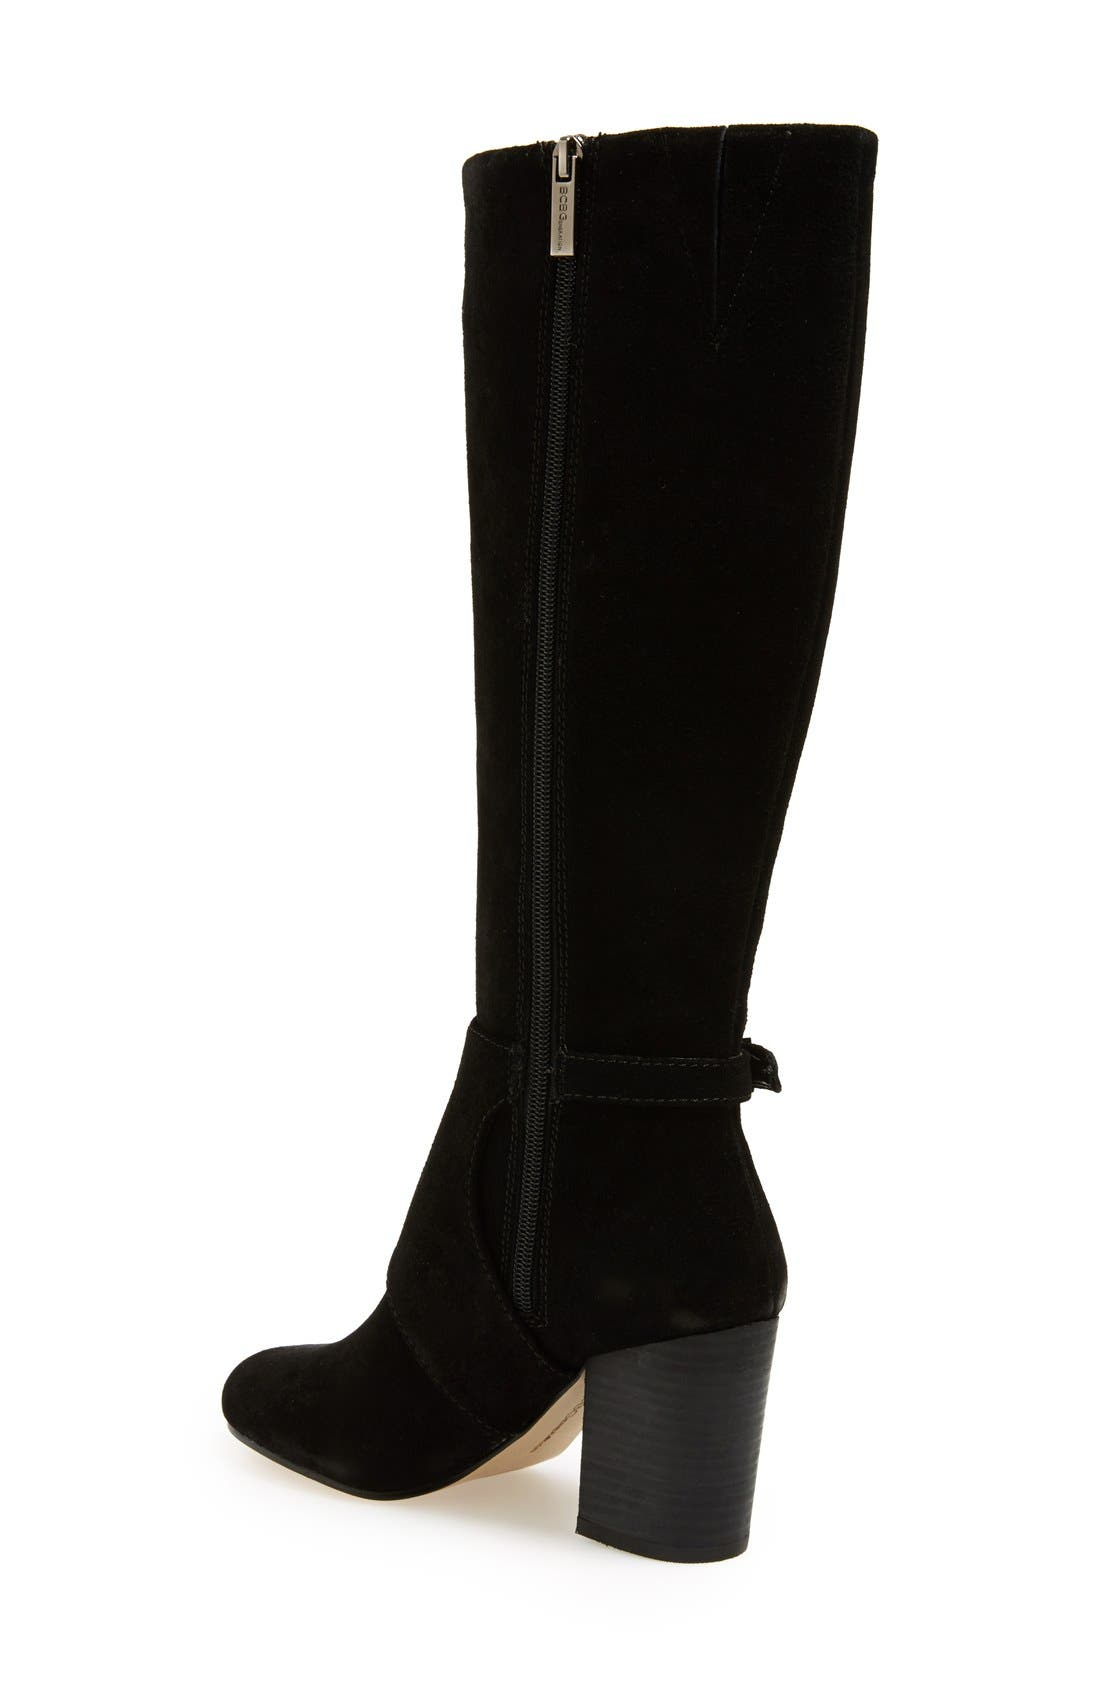 Alternate Image 2  - BCBGeneration 'Denver' Knee High Boot (Women)